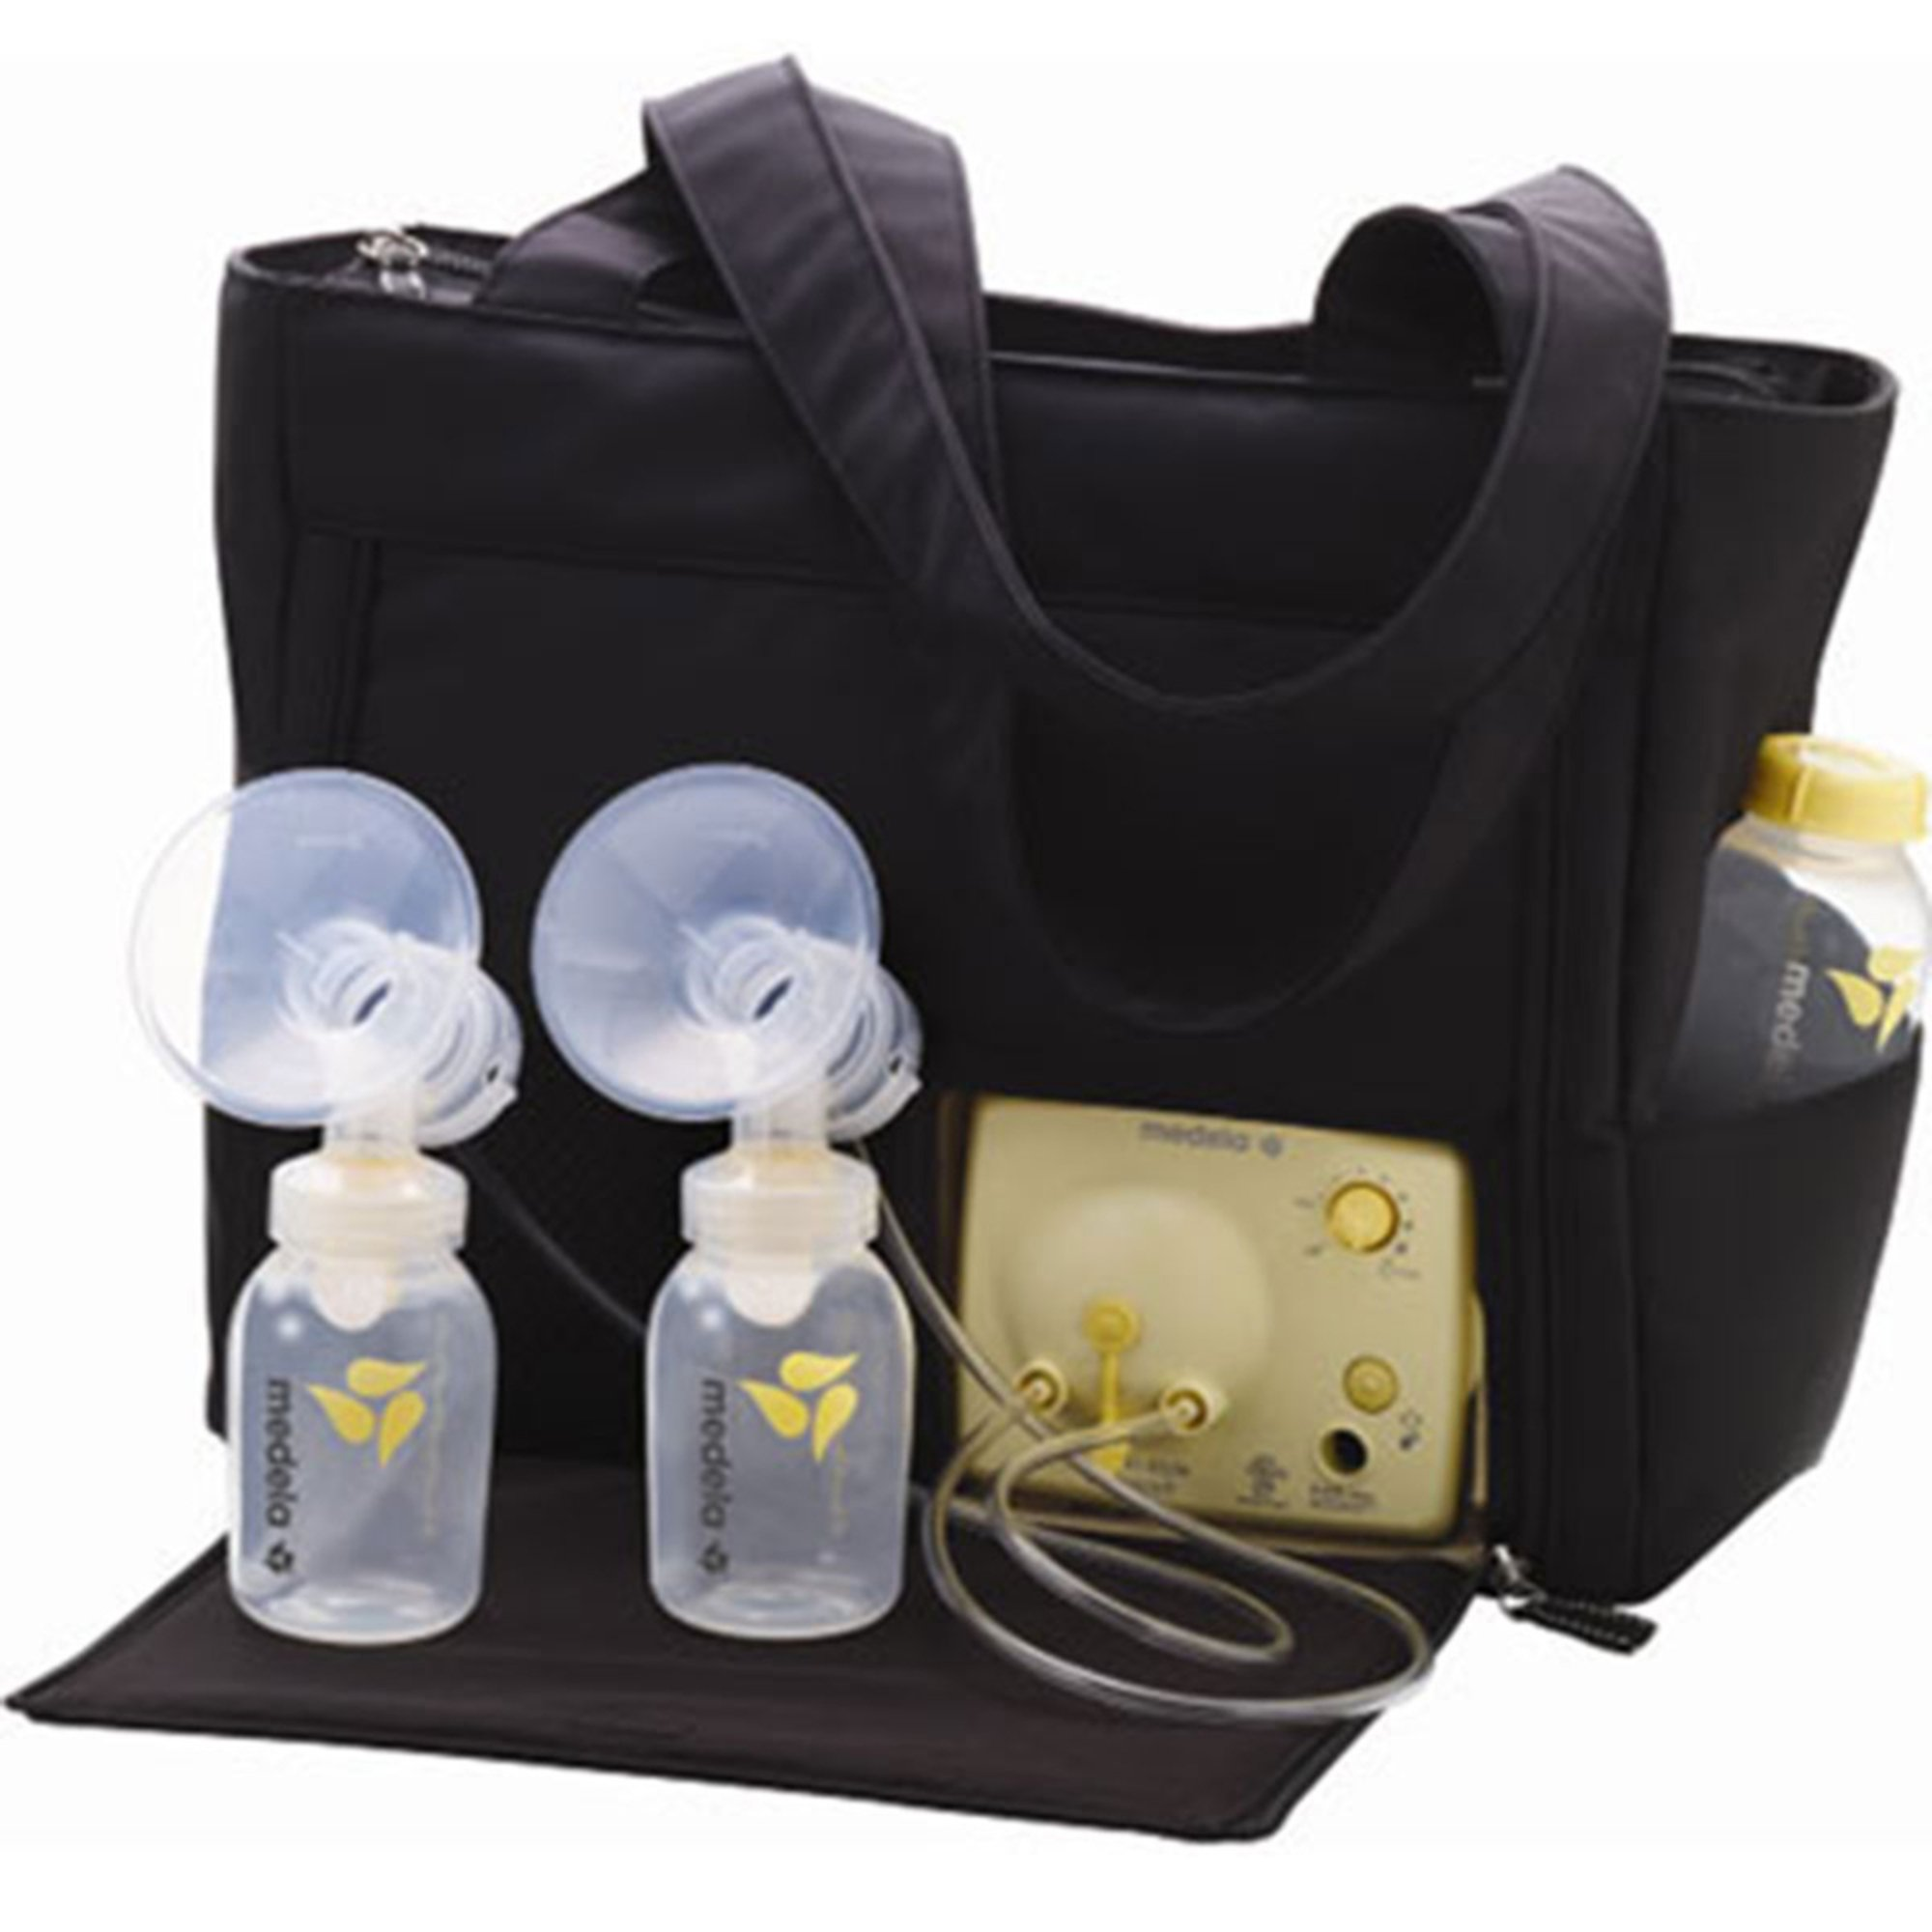 31eee955aea Medela Pump In Style Advanced Breast Pump On-The-Go Tote